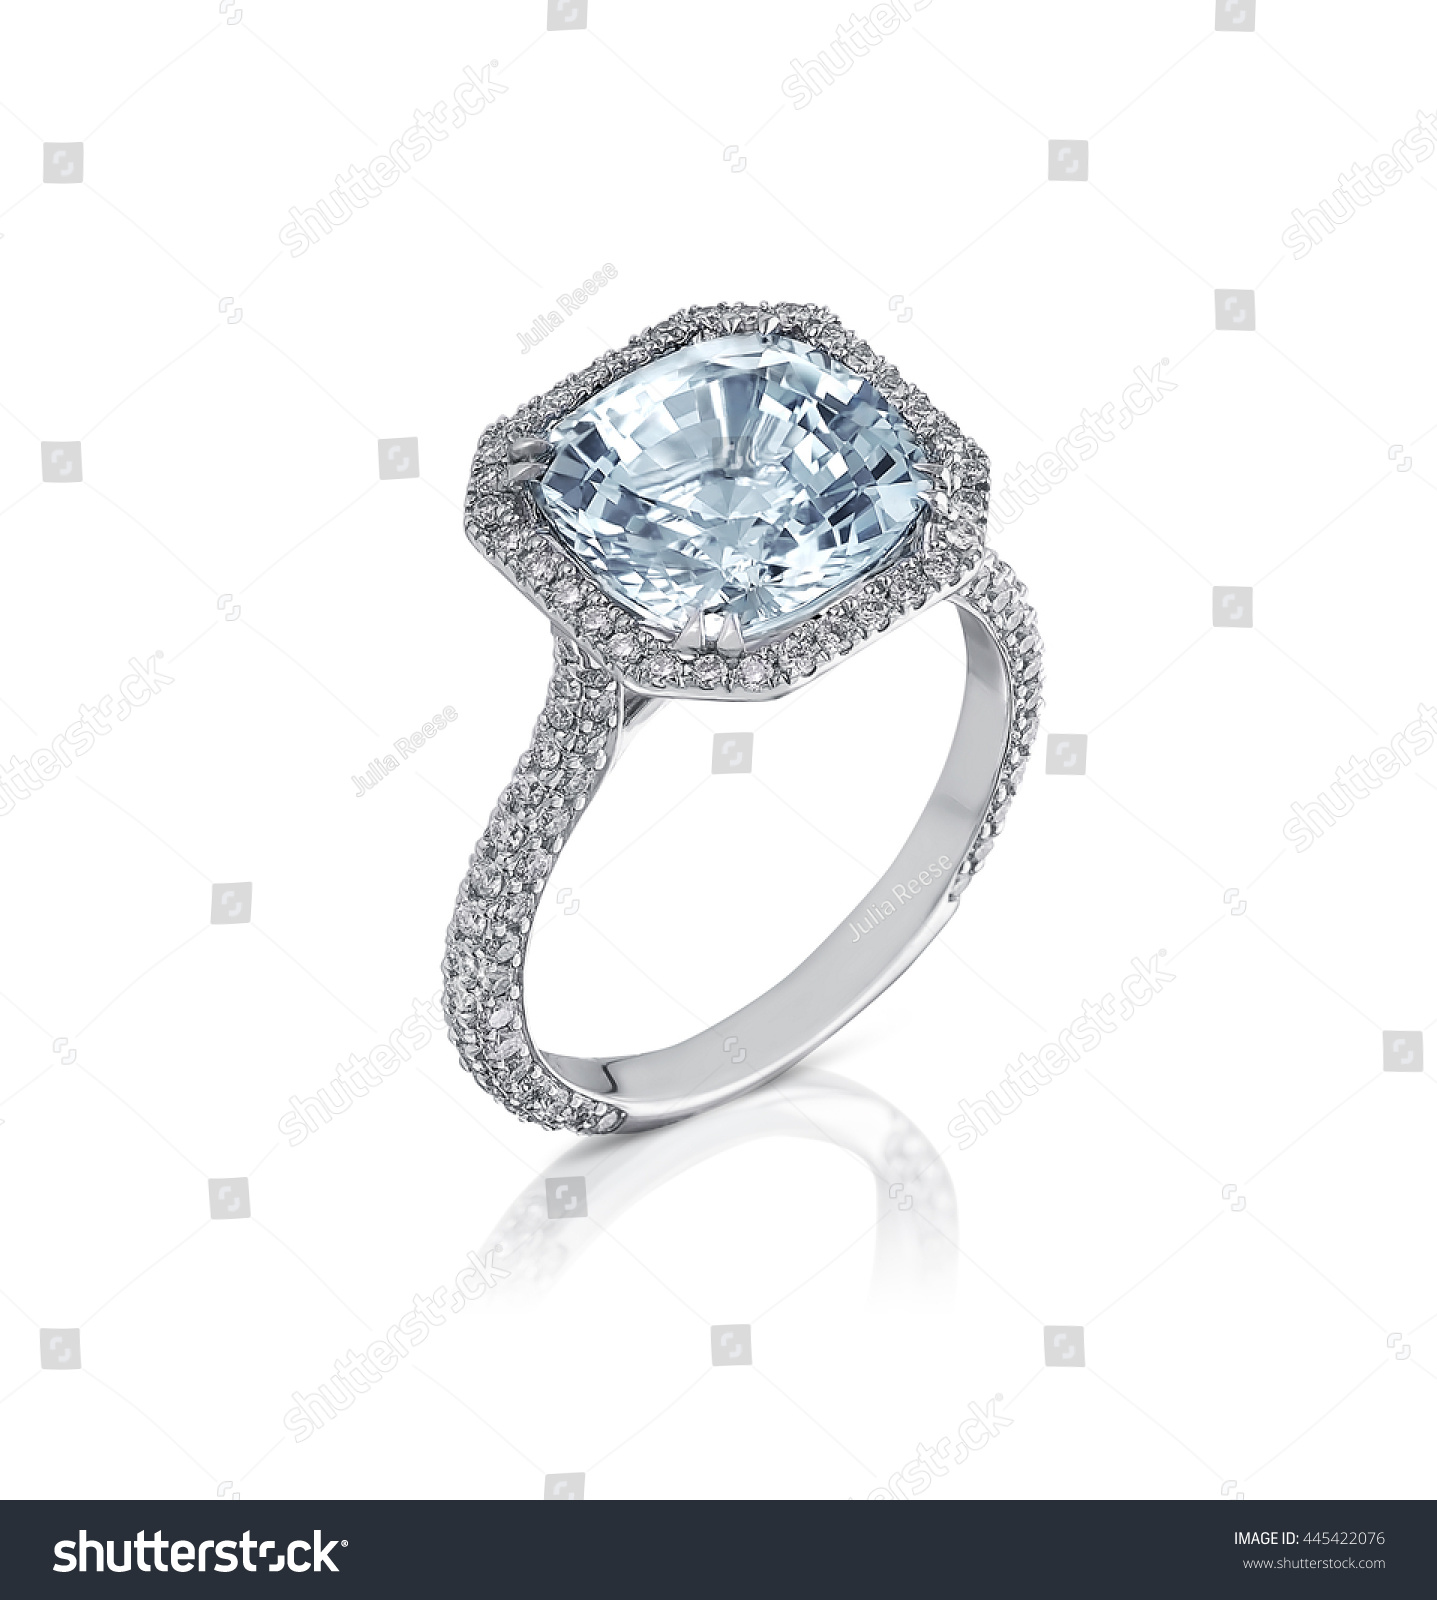 ring rings carat like me of i large is the little look usually chunky alot its topic making big it engagement a diamond drawing but too im attention paranoid and